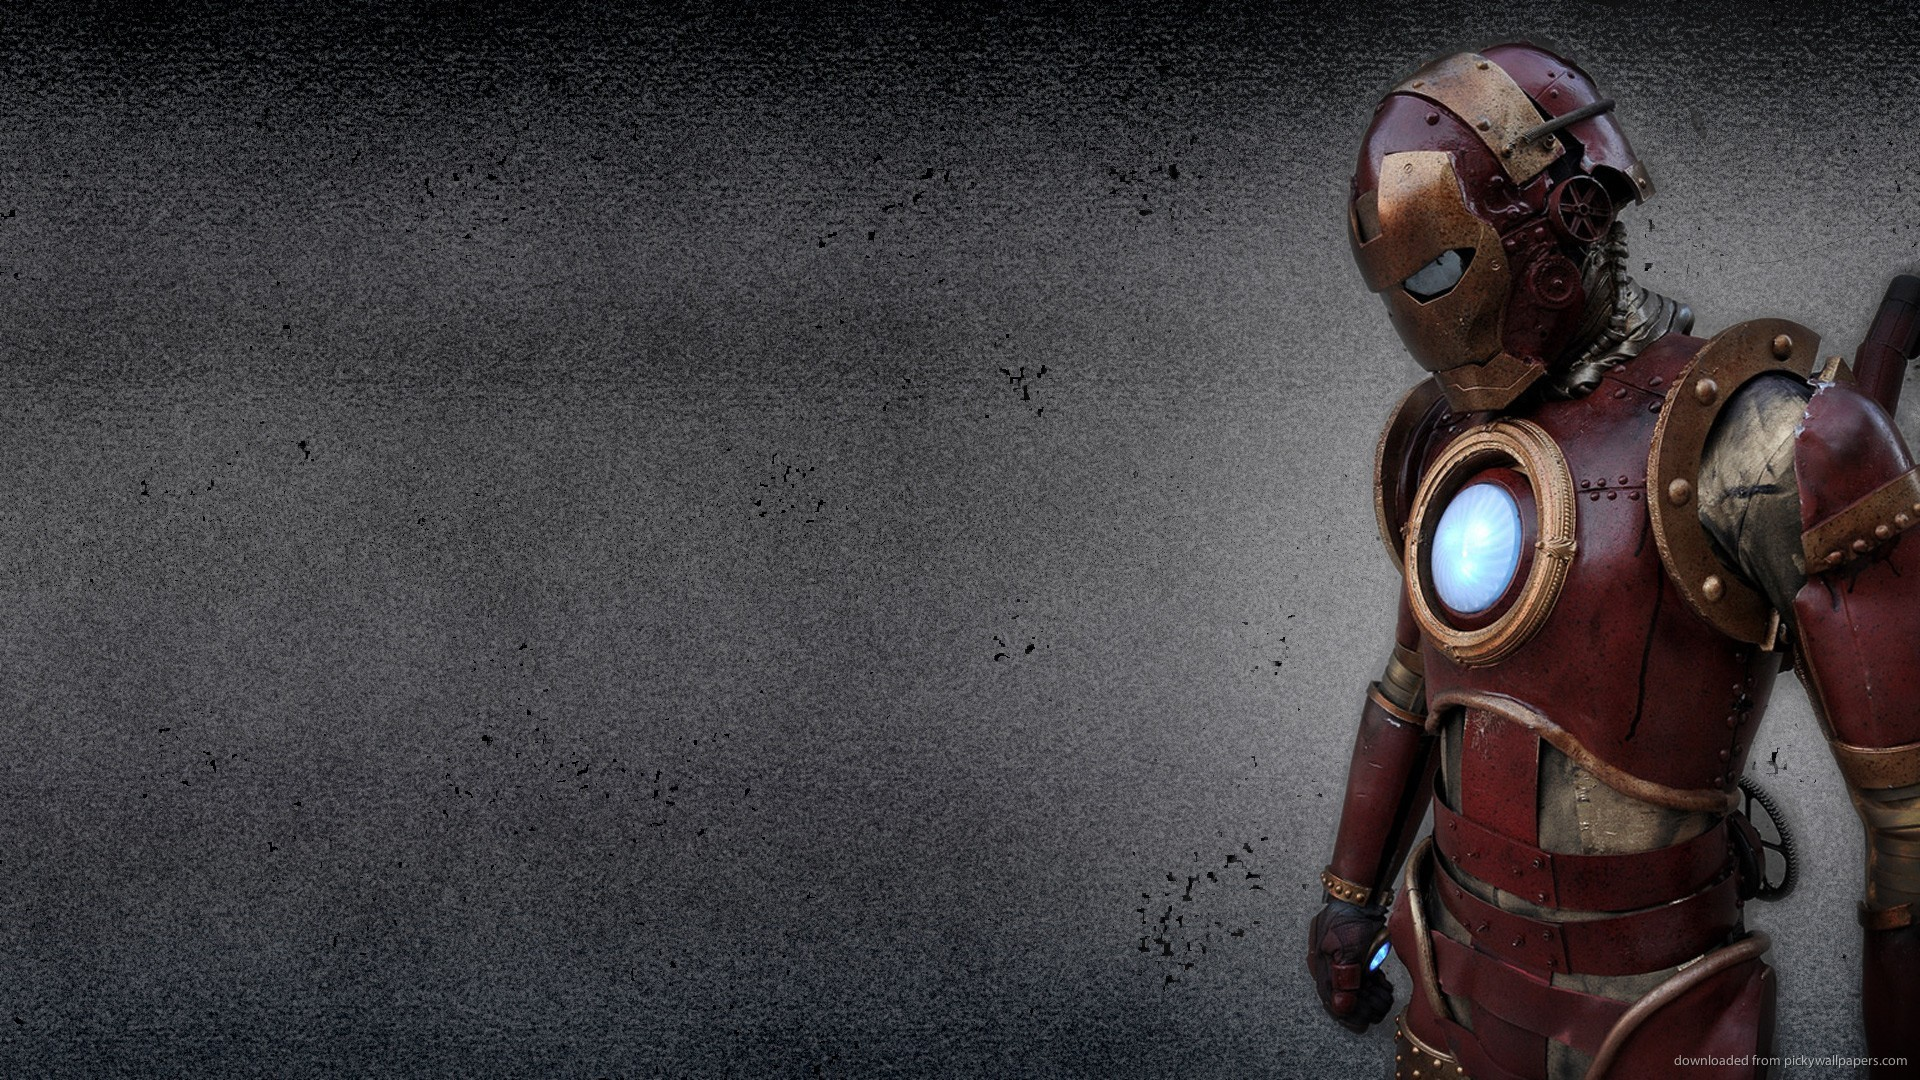 Steampunk Iron Man wallpaper   843442 1920x1080